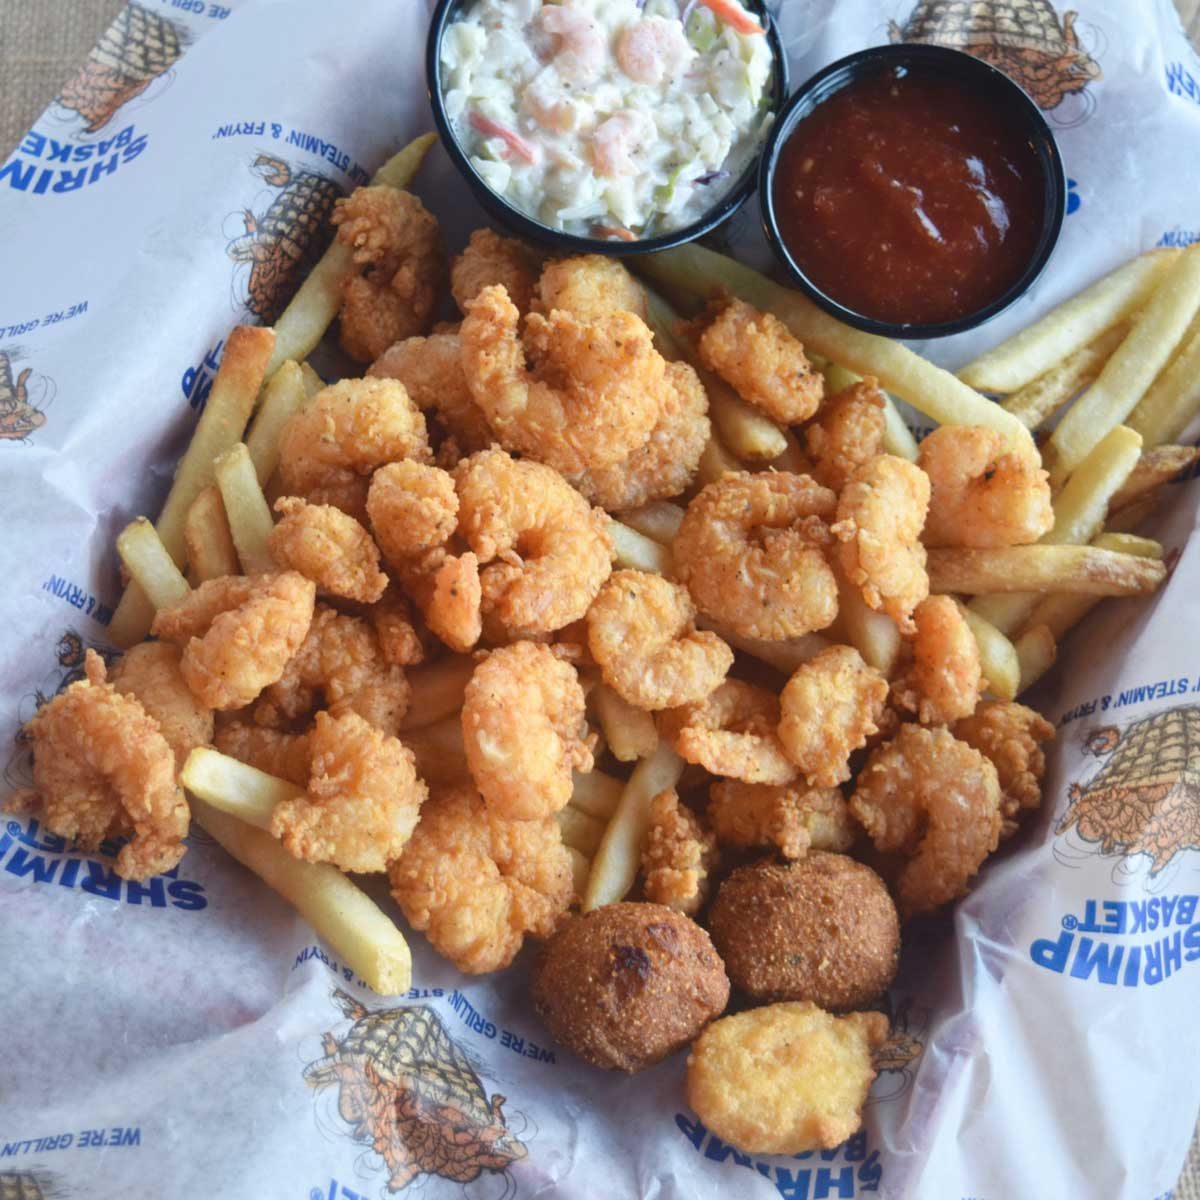 $10 POPCORN SHRIMP BASKET